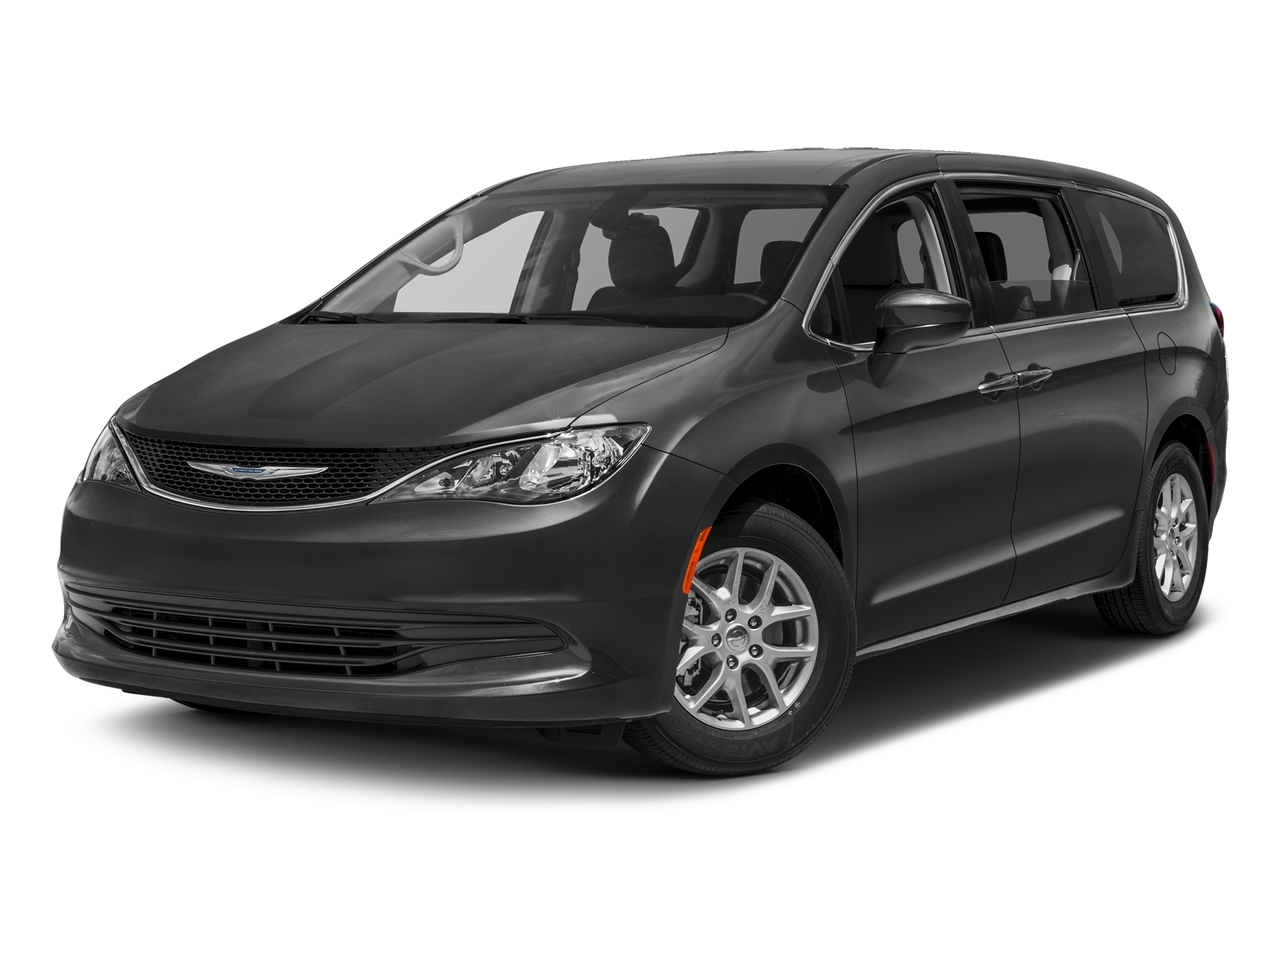 2017 Chrysler Pacifica in Weiser, ID